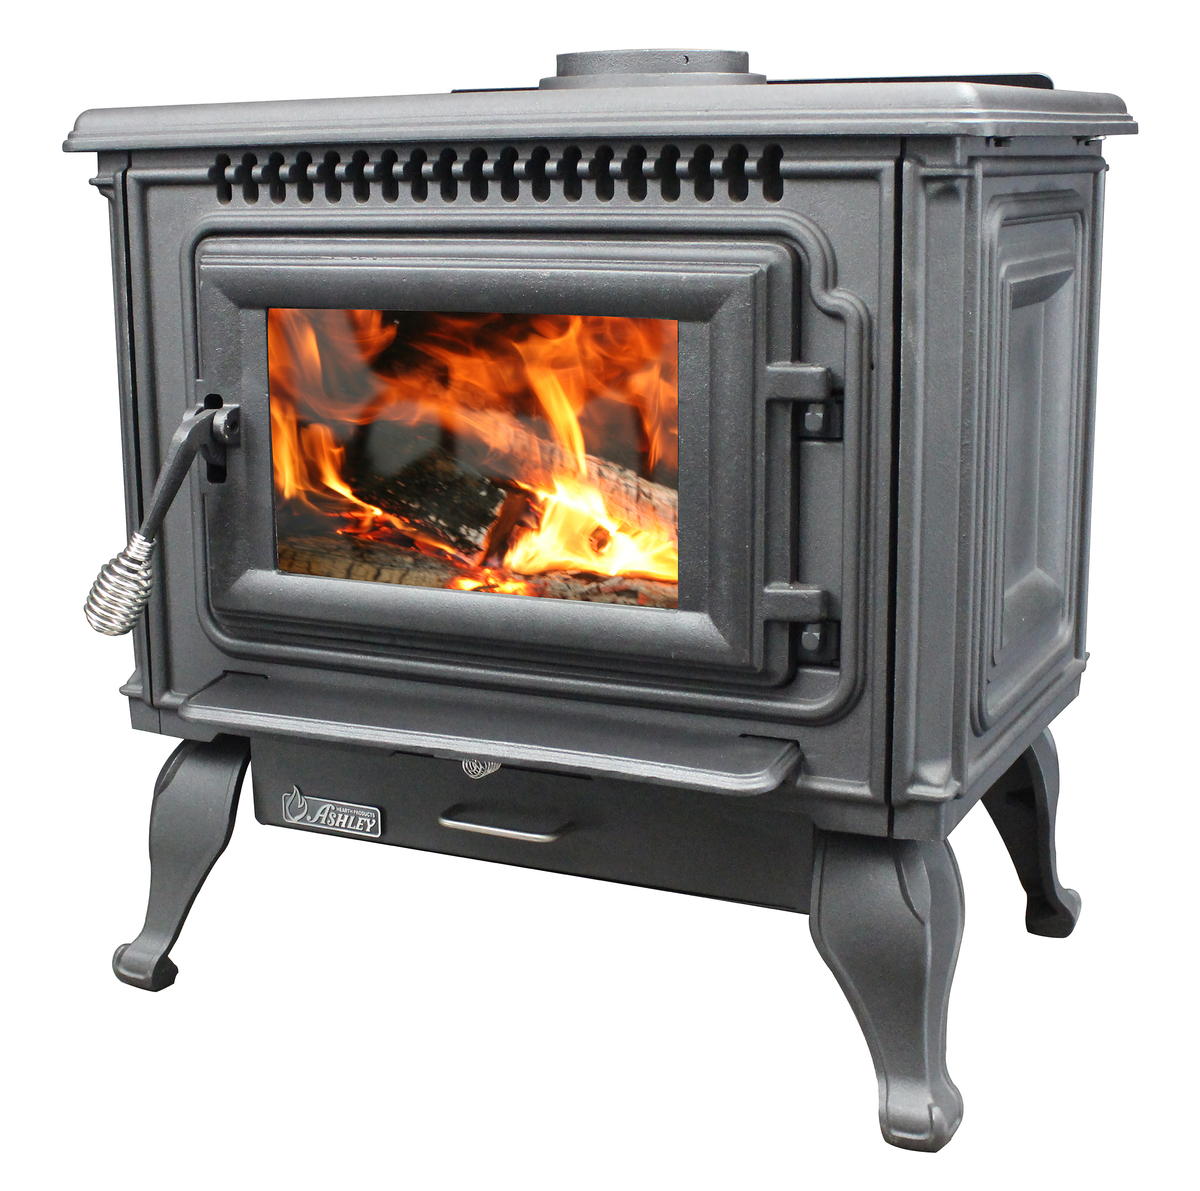 Fireplace Grate Blowers Wood Burning 2 000 Sq Ft Epa Certified Cast Iron Wood Stove With Blower